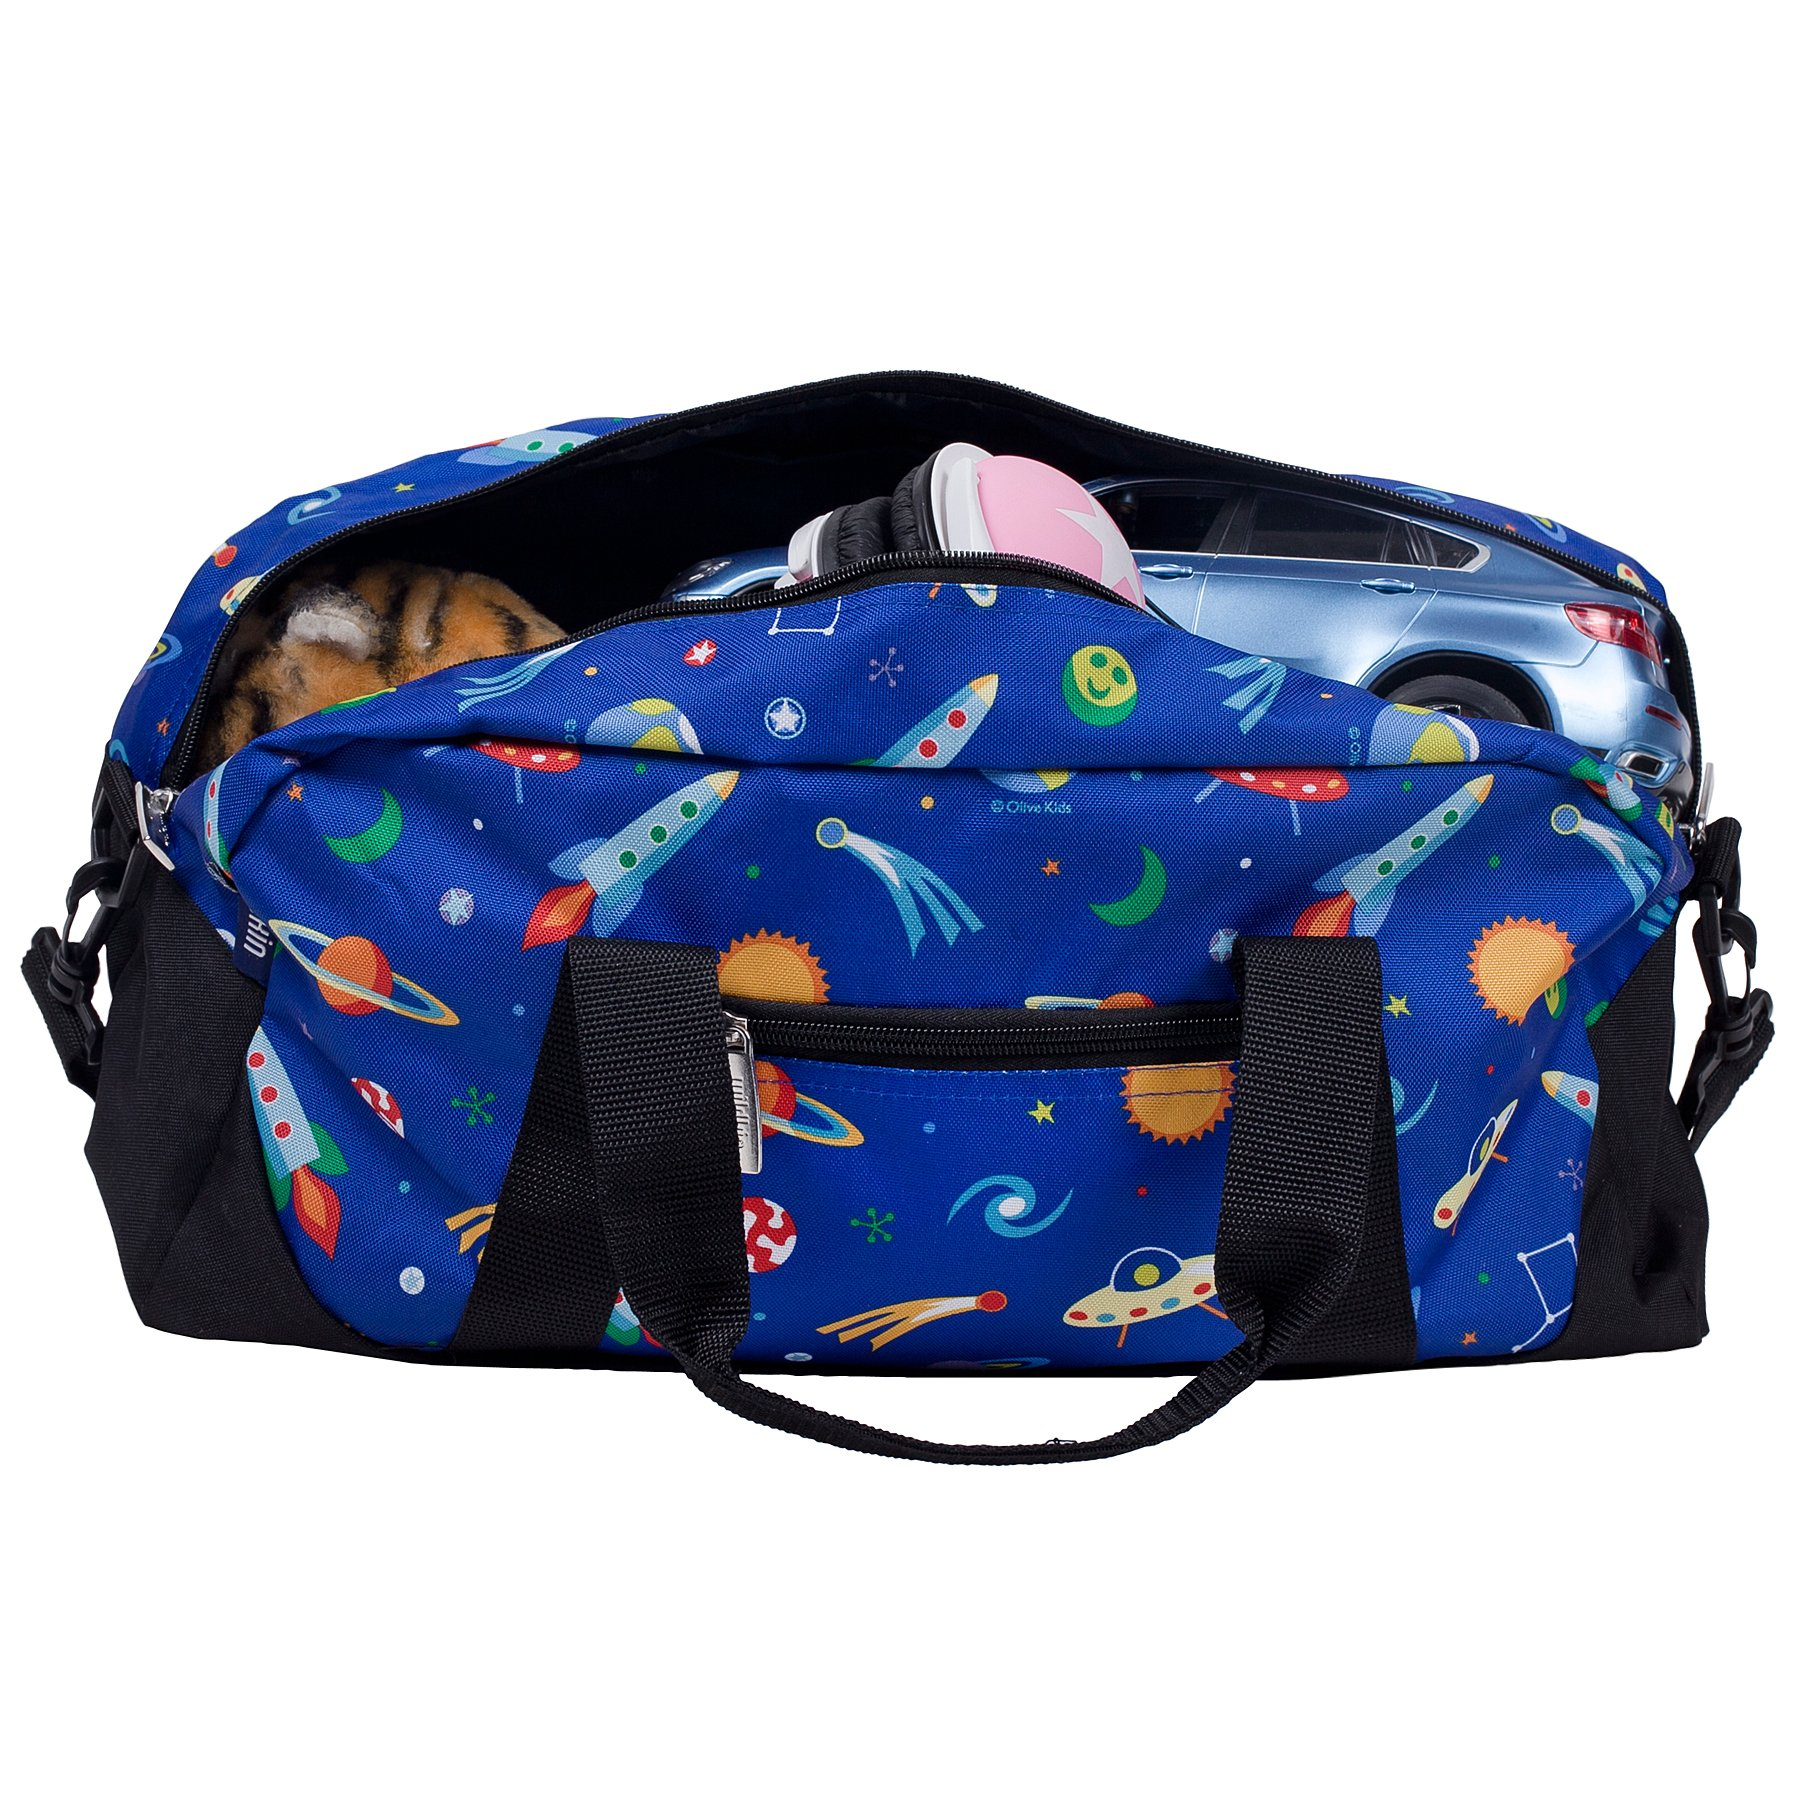 Wildkin Overnighter Duffel Bag, Features Moisture-Resistant Lining and Padded Shoulder Strap, Perfect for Sleepovers, Sports Practice, and Travel, Olive Kids Designs – Out of this World by Wildkin (Image #3)